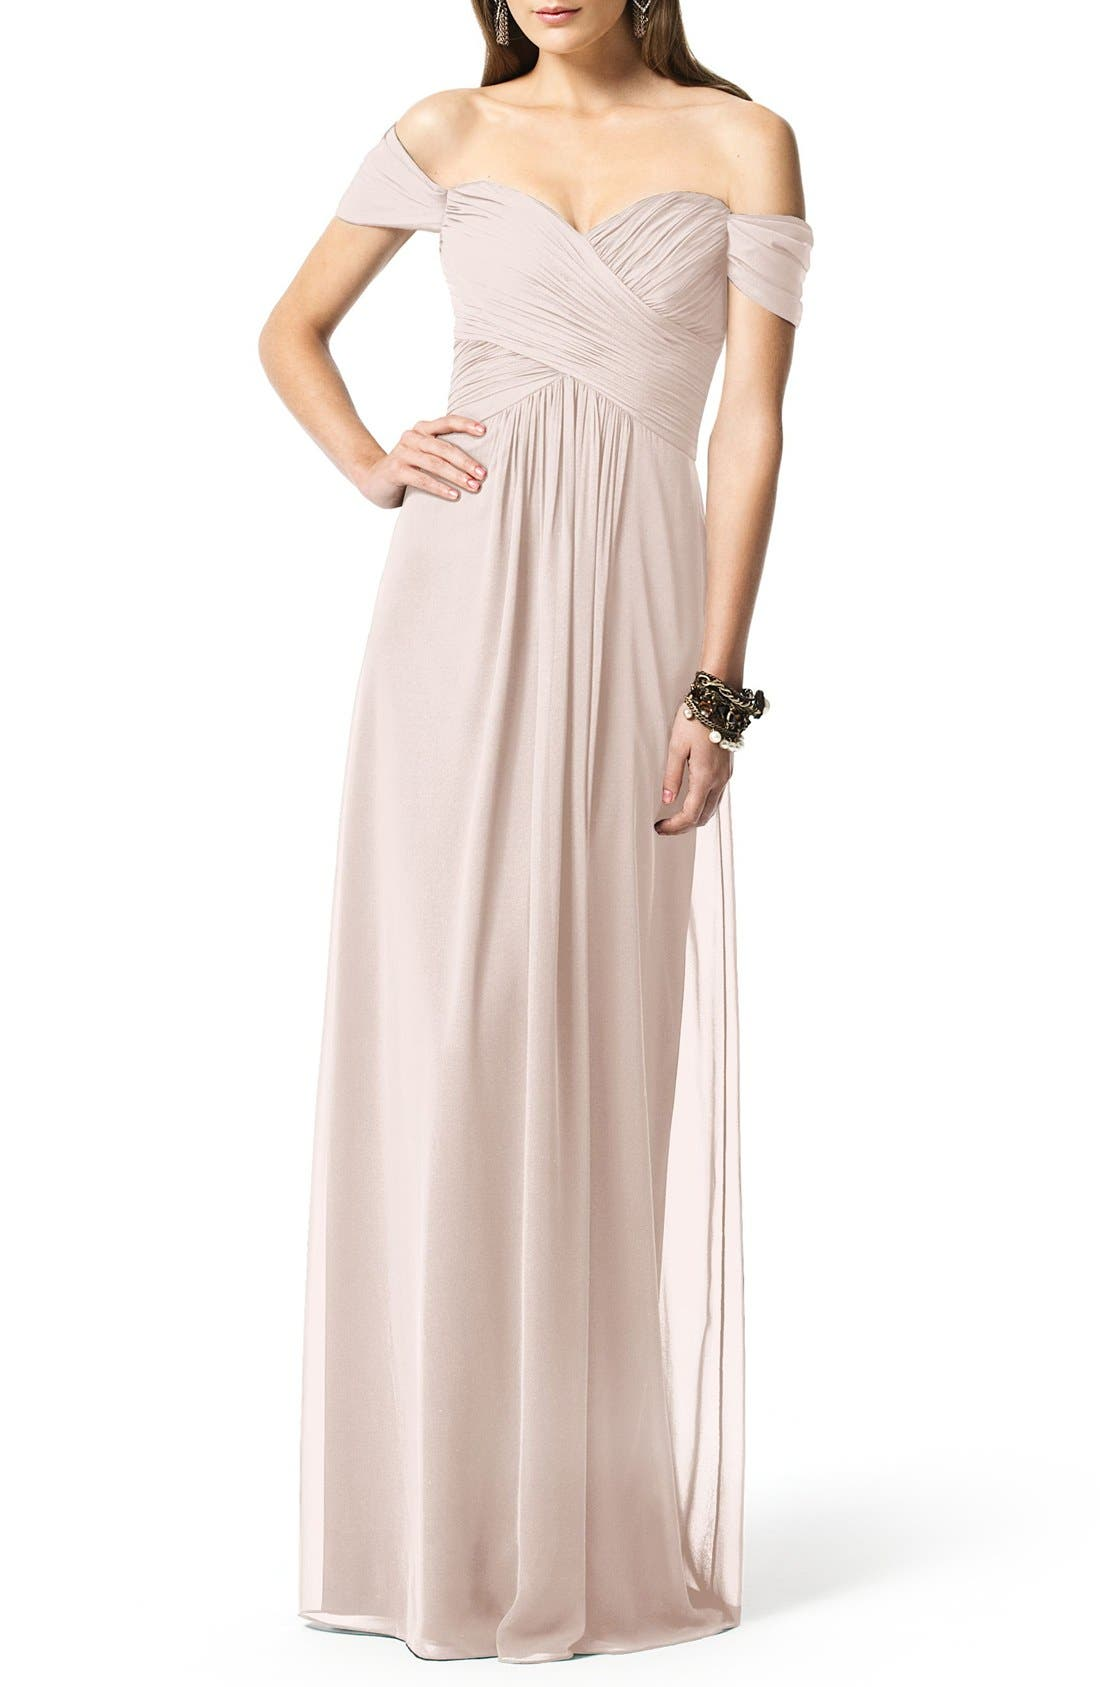 Dessy collection bridesmaid wedding party dresses nordstrom ombrellifo Images